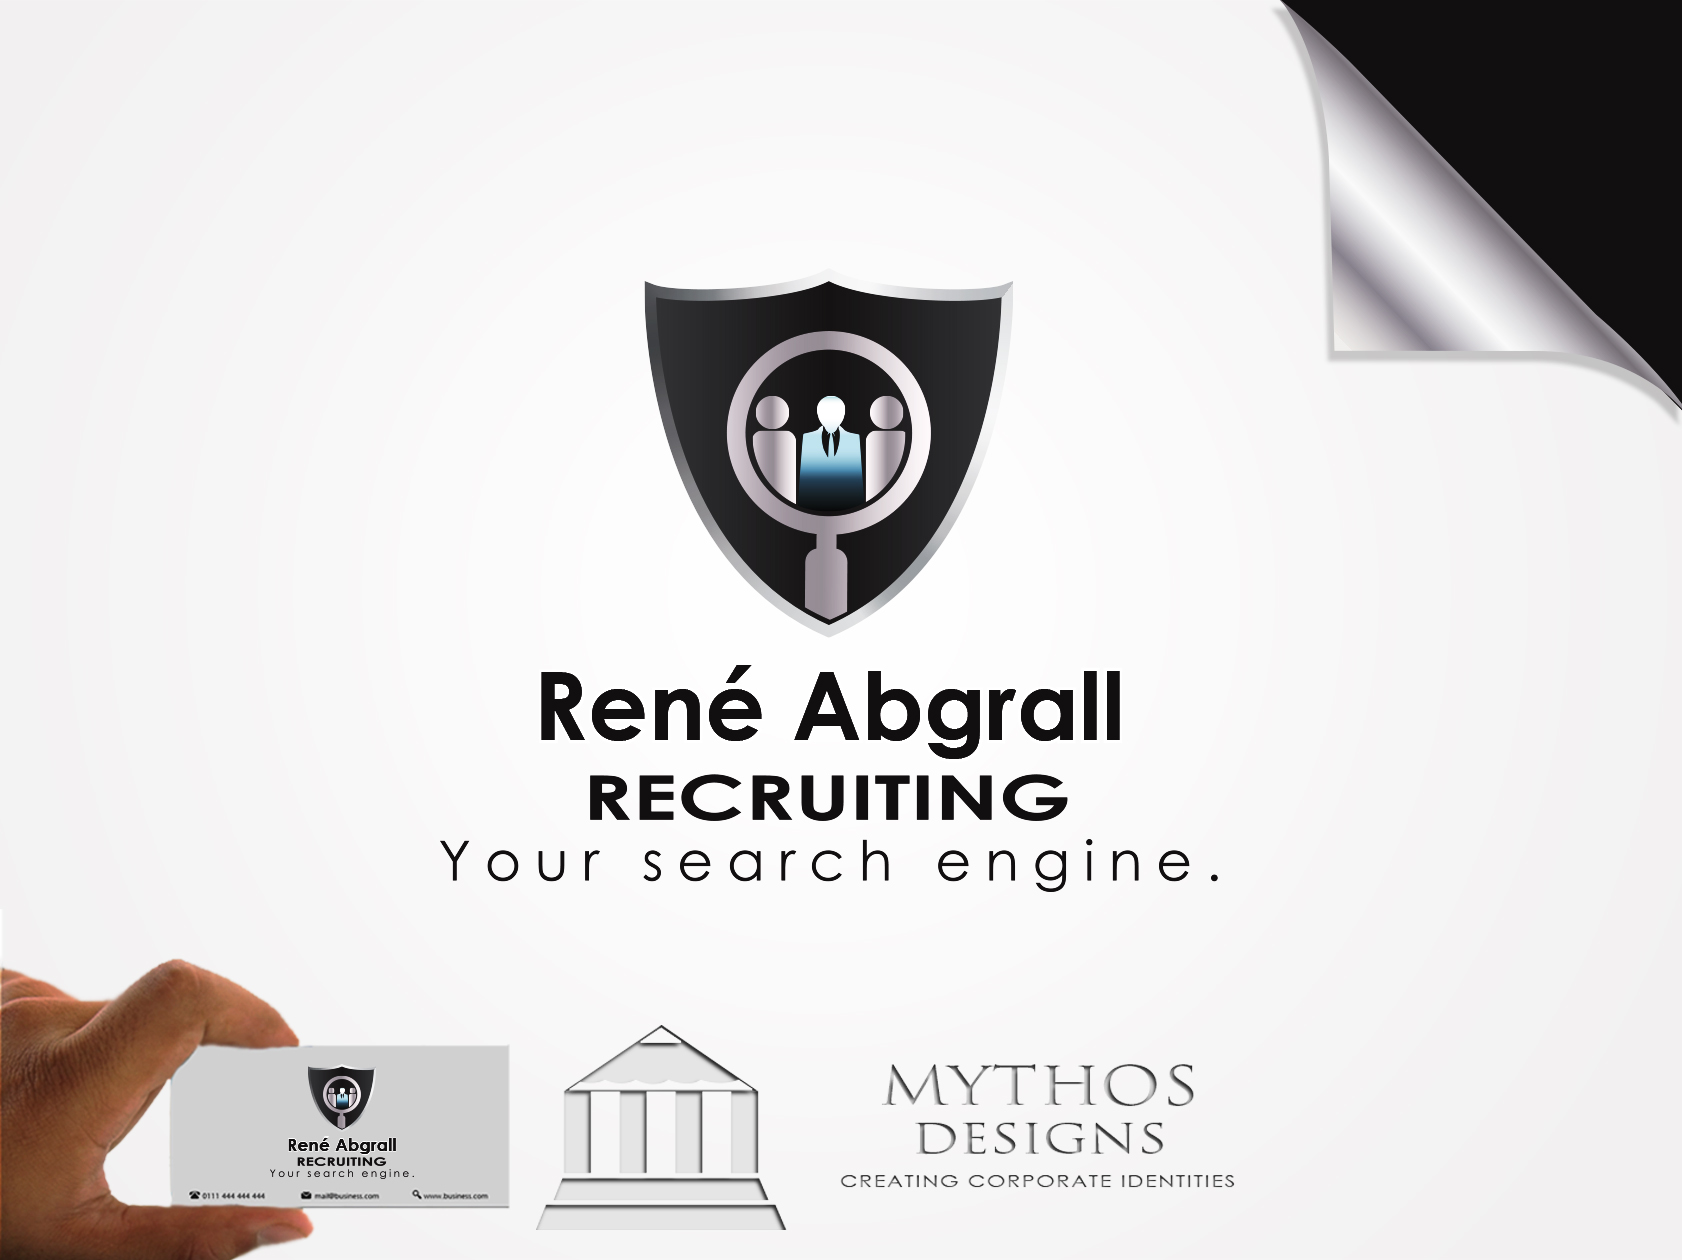 Logo Design by Mythos Designs - Entry No. 33 in the Logo Design Contest Artistic Logo Design for René Abgrall Recruiting.